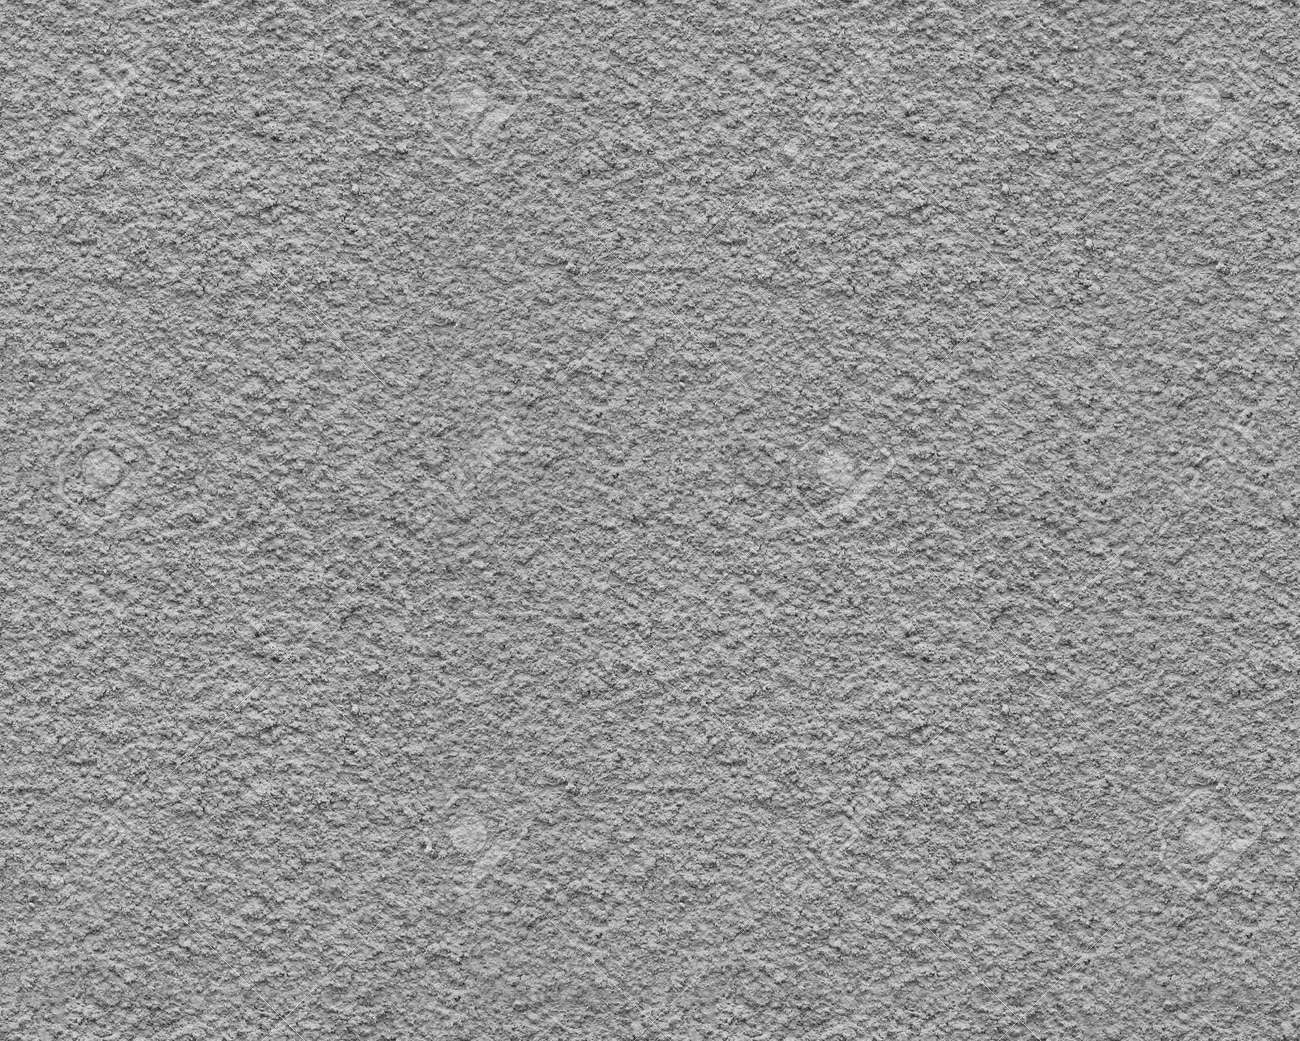 real tiled cement hq texture in gray color stock photo 585739 - Ciment Color